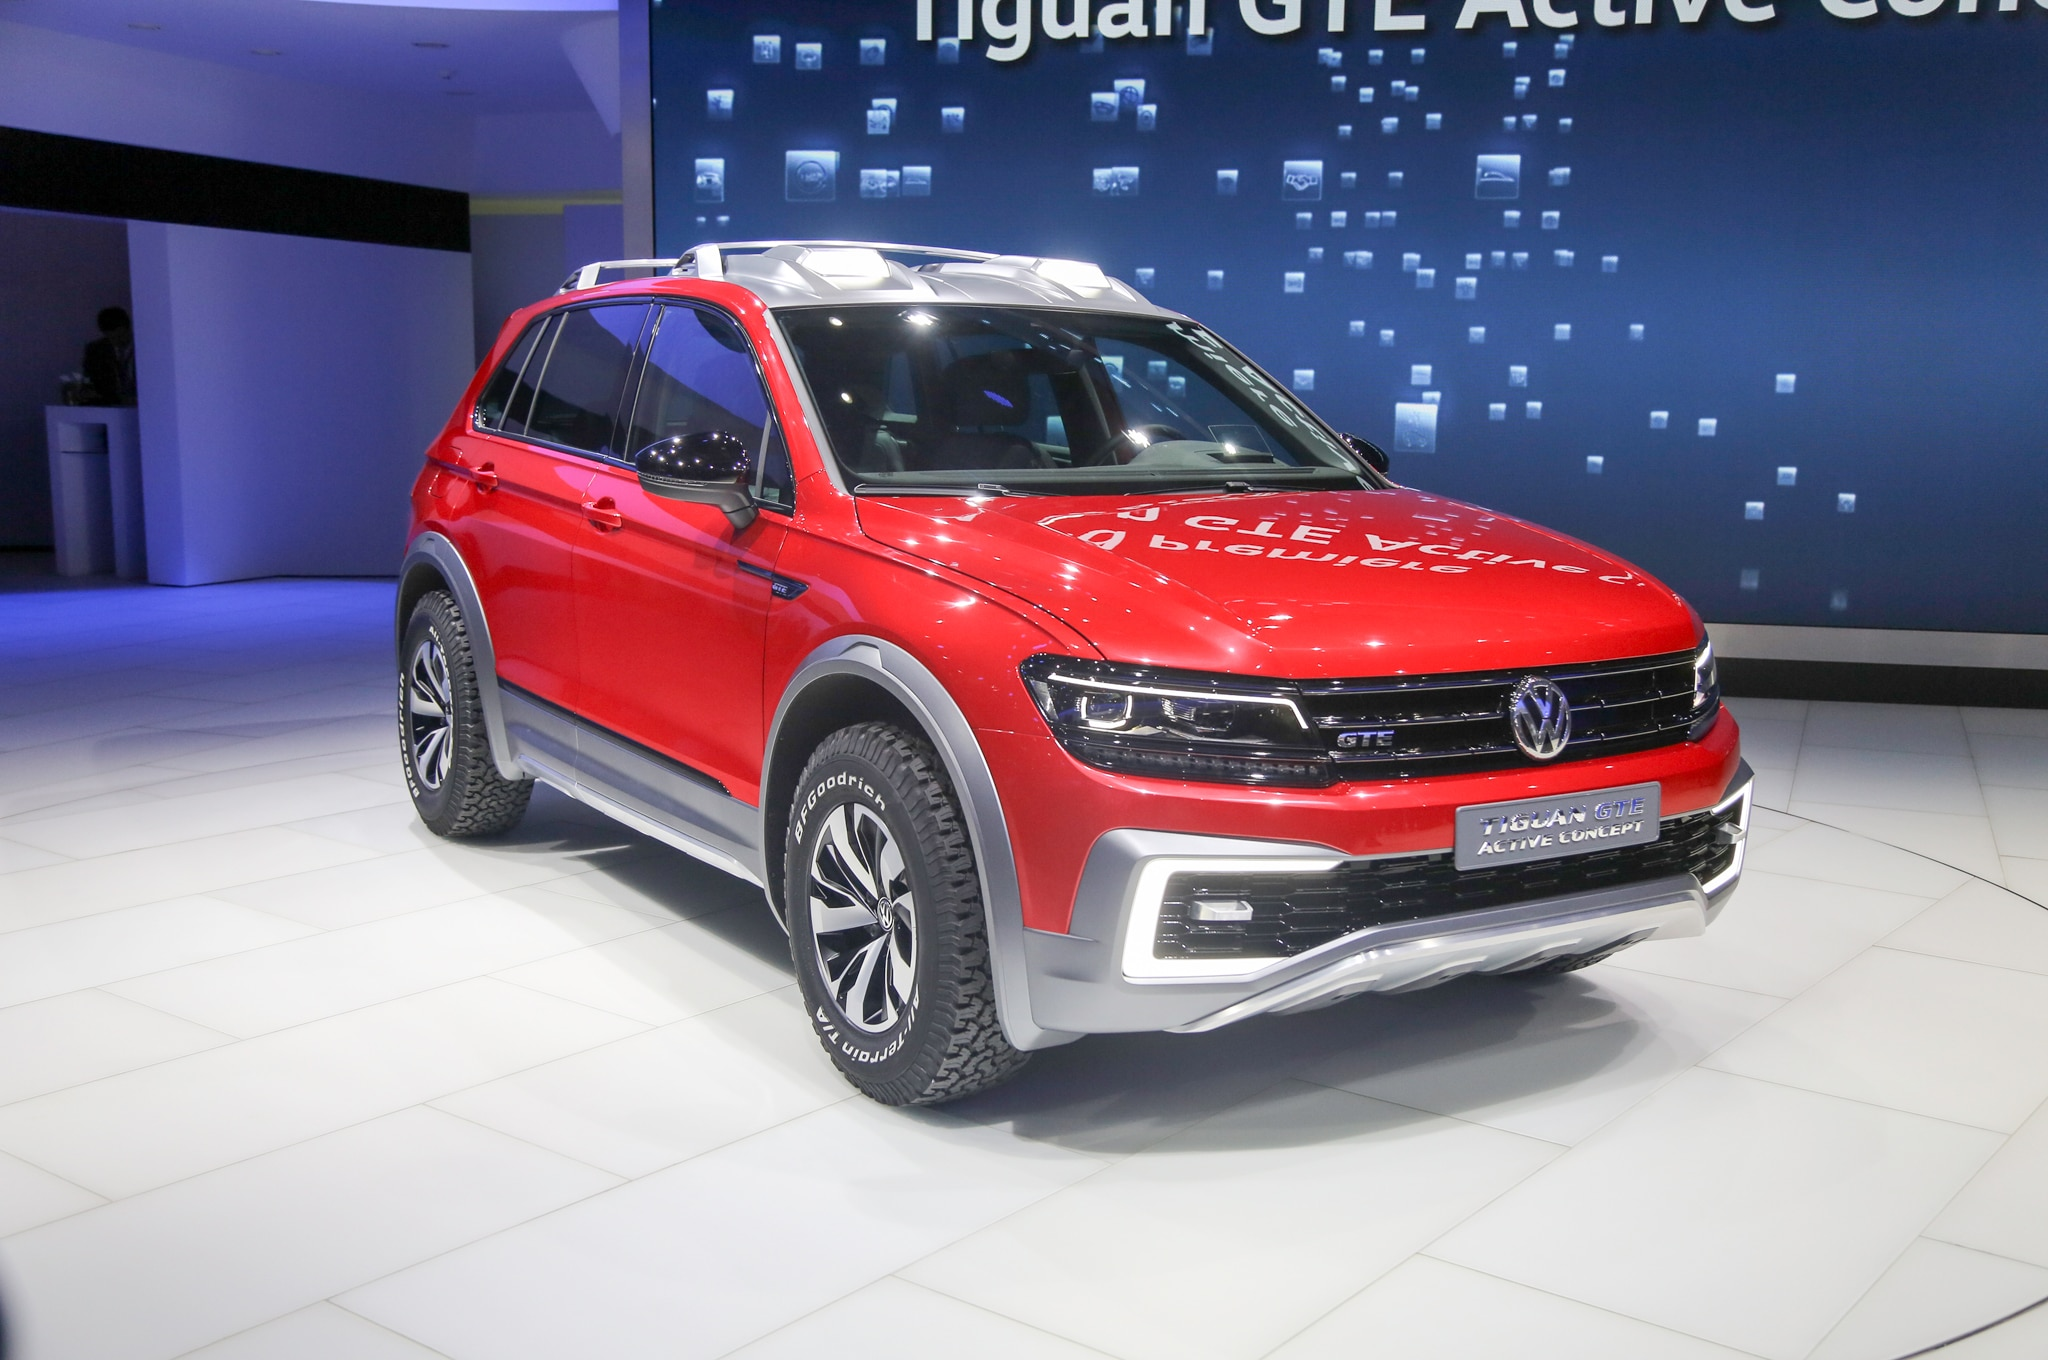 2018 VW Tiguan Hybrid: Rumor Or Reality? >> Volkswagen Tiguan Gte Active Concept Is An Awd Hybrid